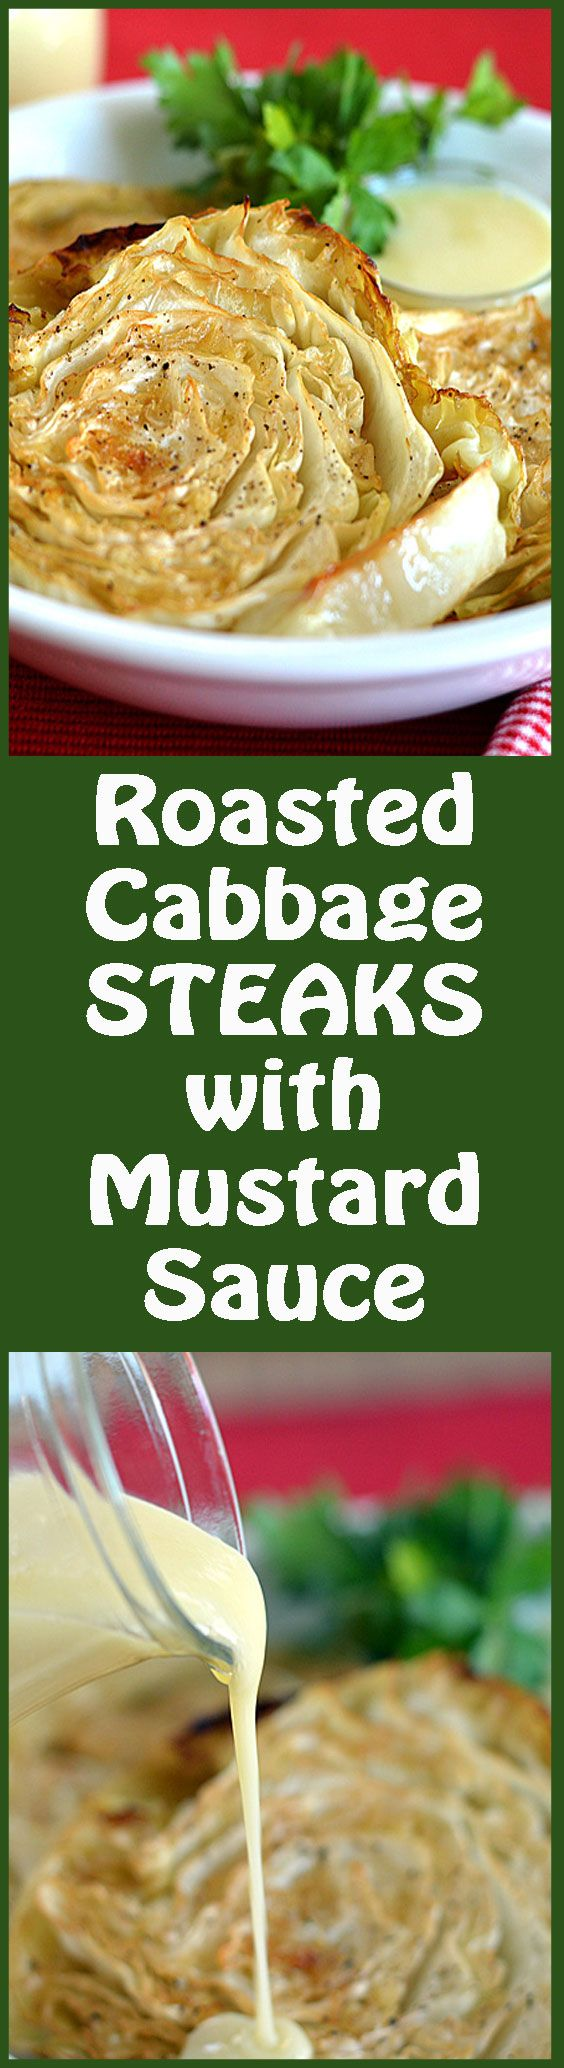 Roasted Cabbage Steaks with Mustard Dipping Sauce by The Veg Life!